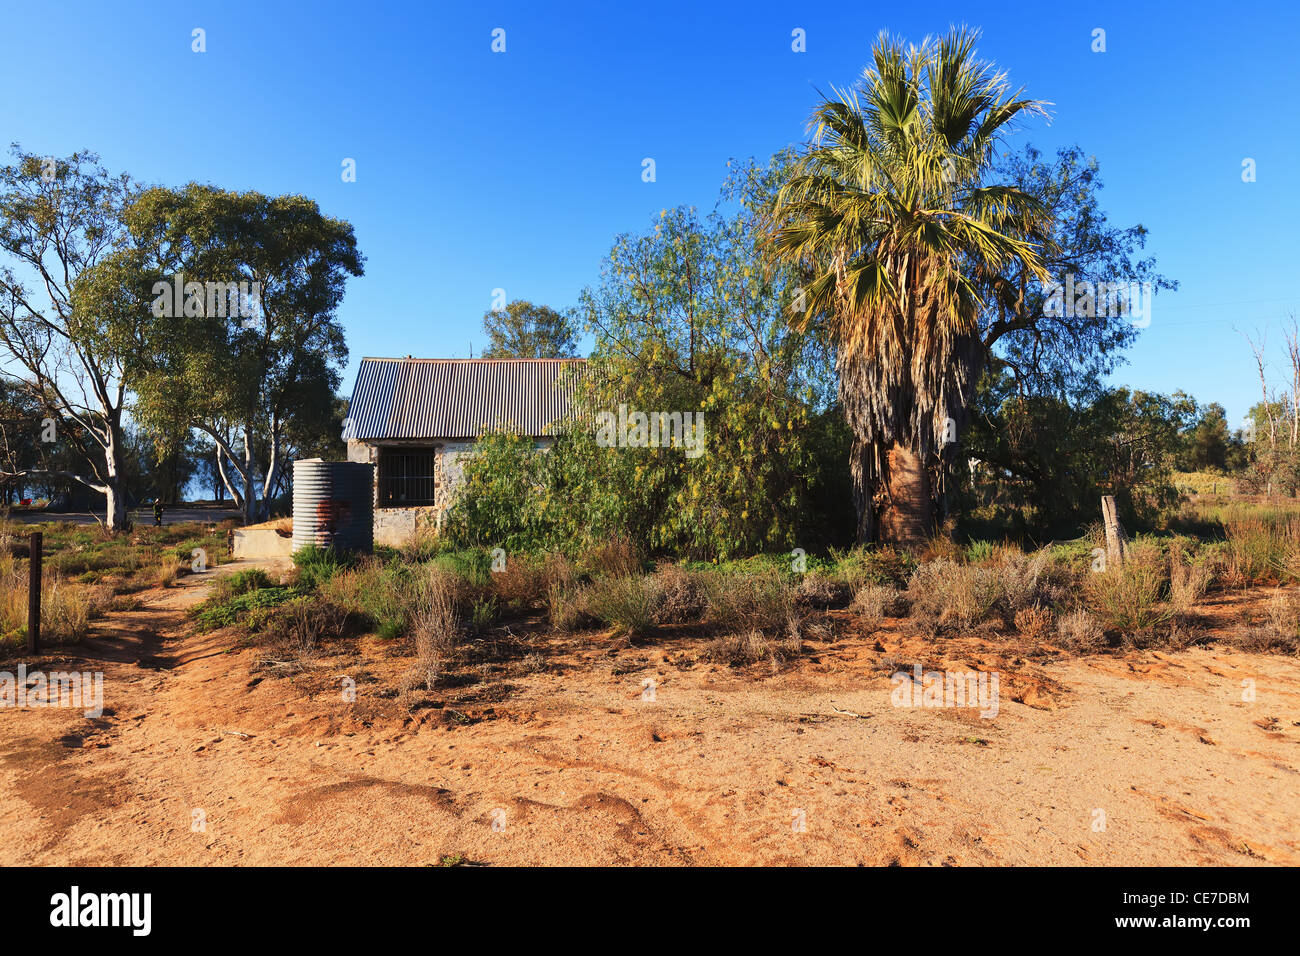 William Nappers Old Outback Hotel Ruins - Stock Image